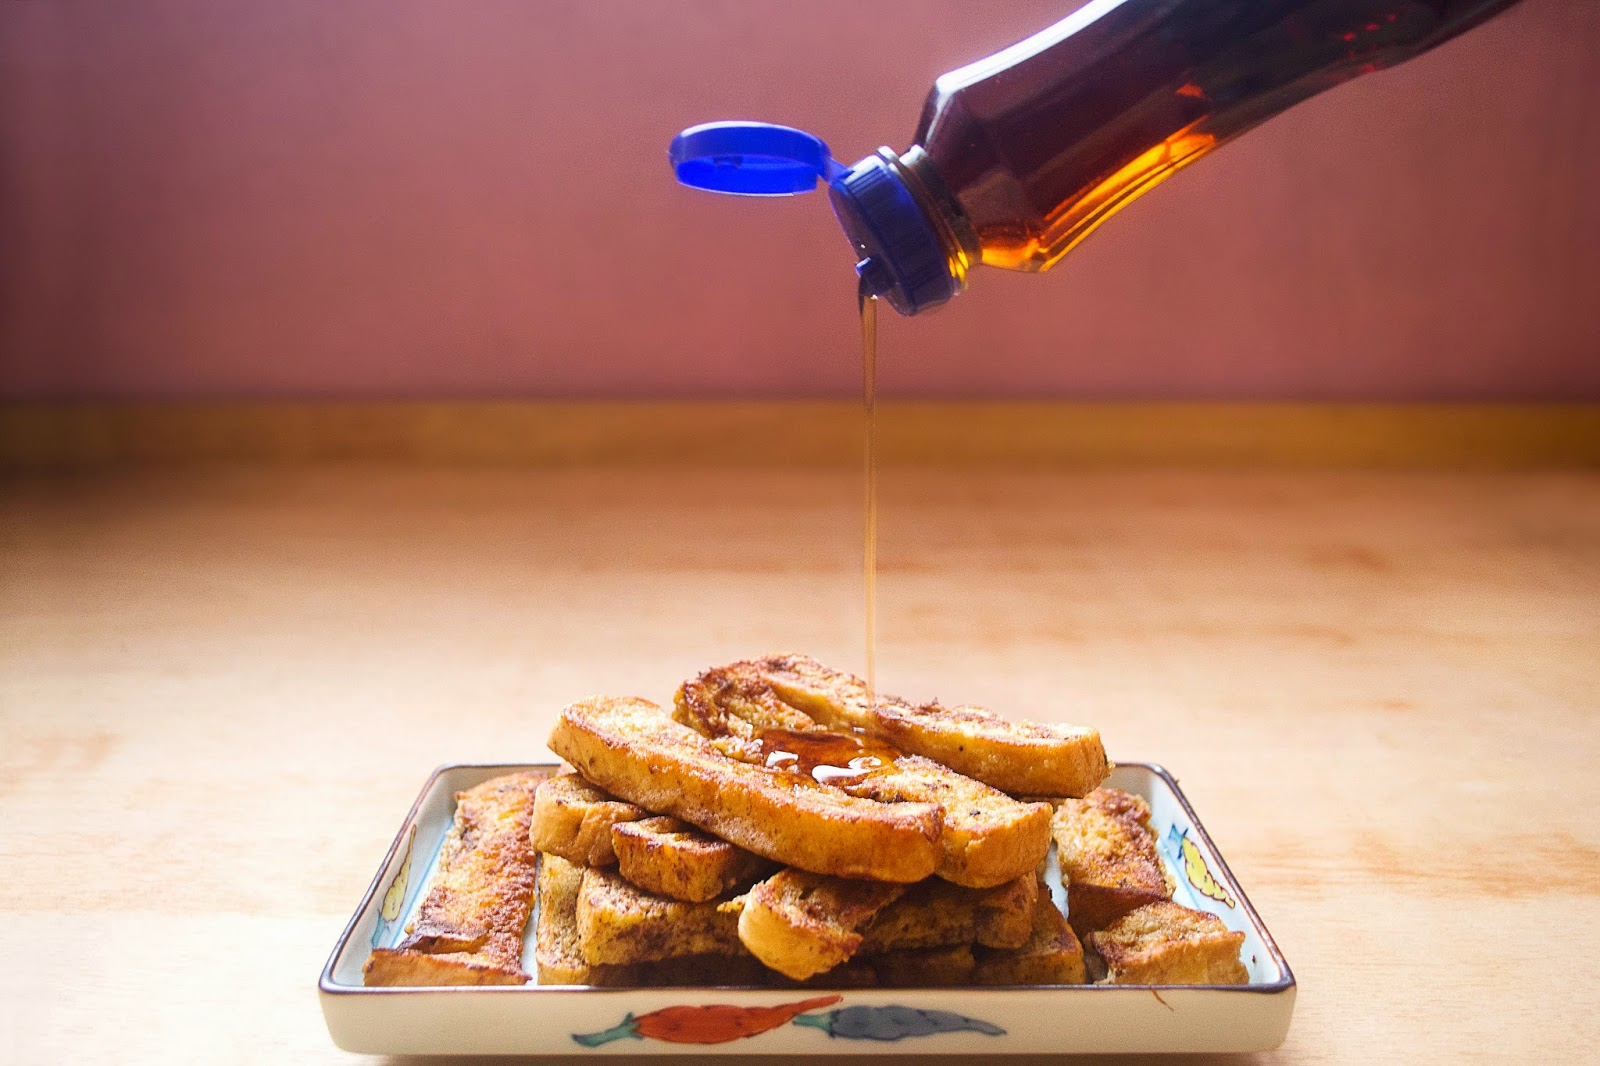 Frost serve cinnamon french toast sticks recipe ive been the one who introduced french toast to my family when i stumbled upon a recipe from an all purpose cream carton i was able to perfect it once or solutioingenieria Images